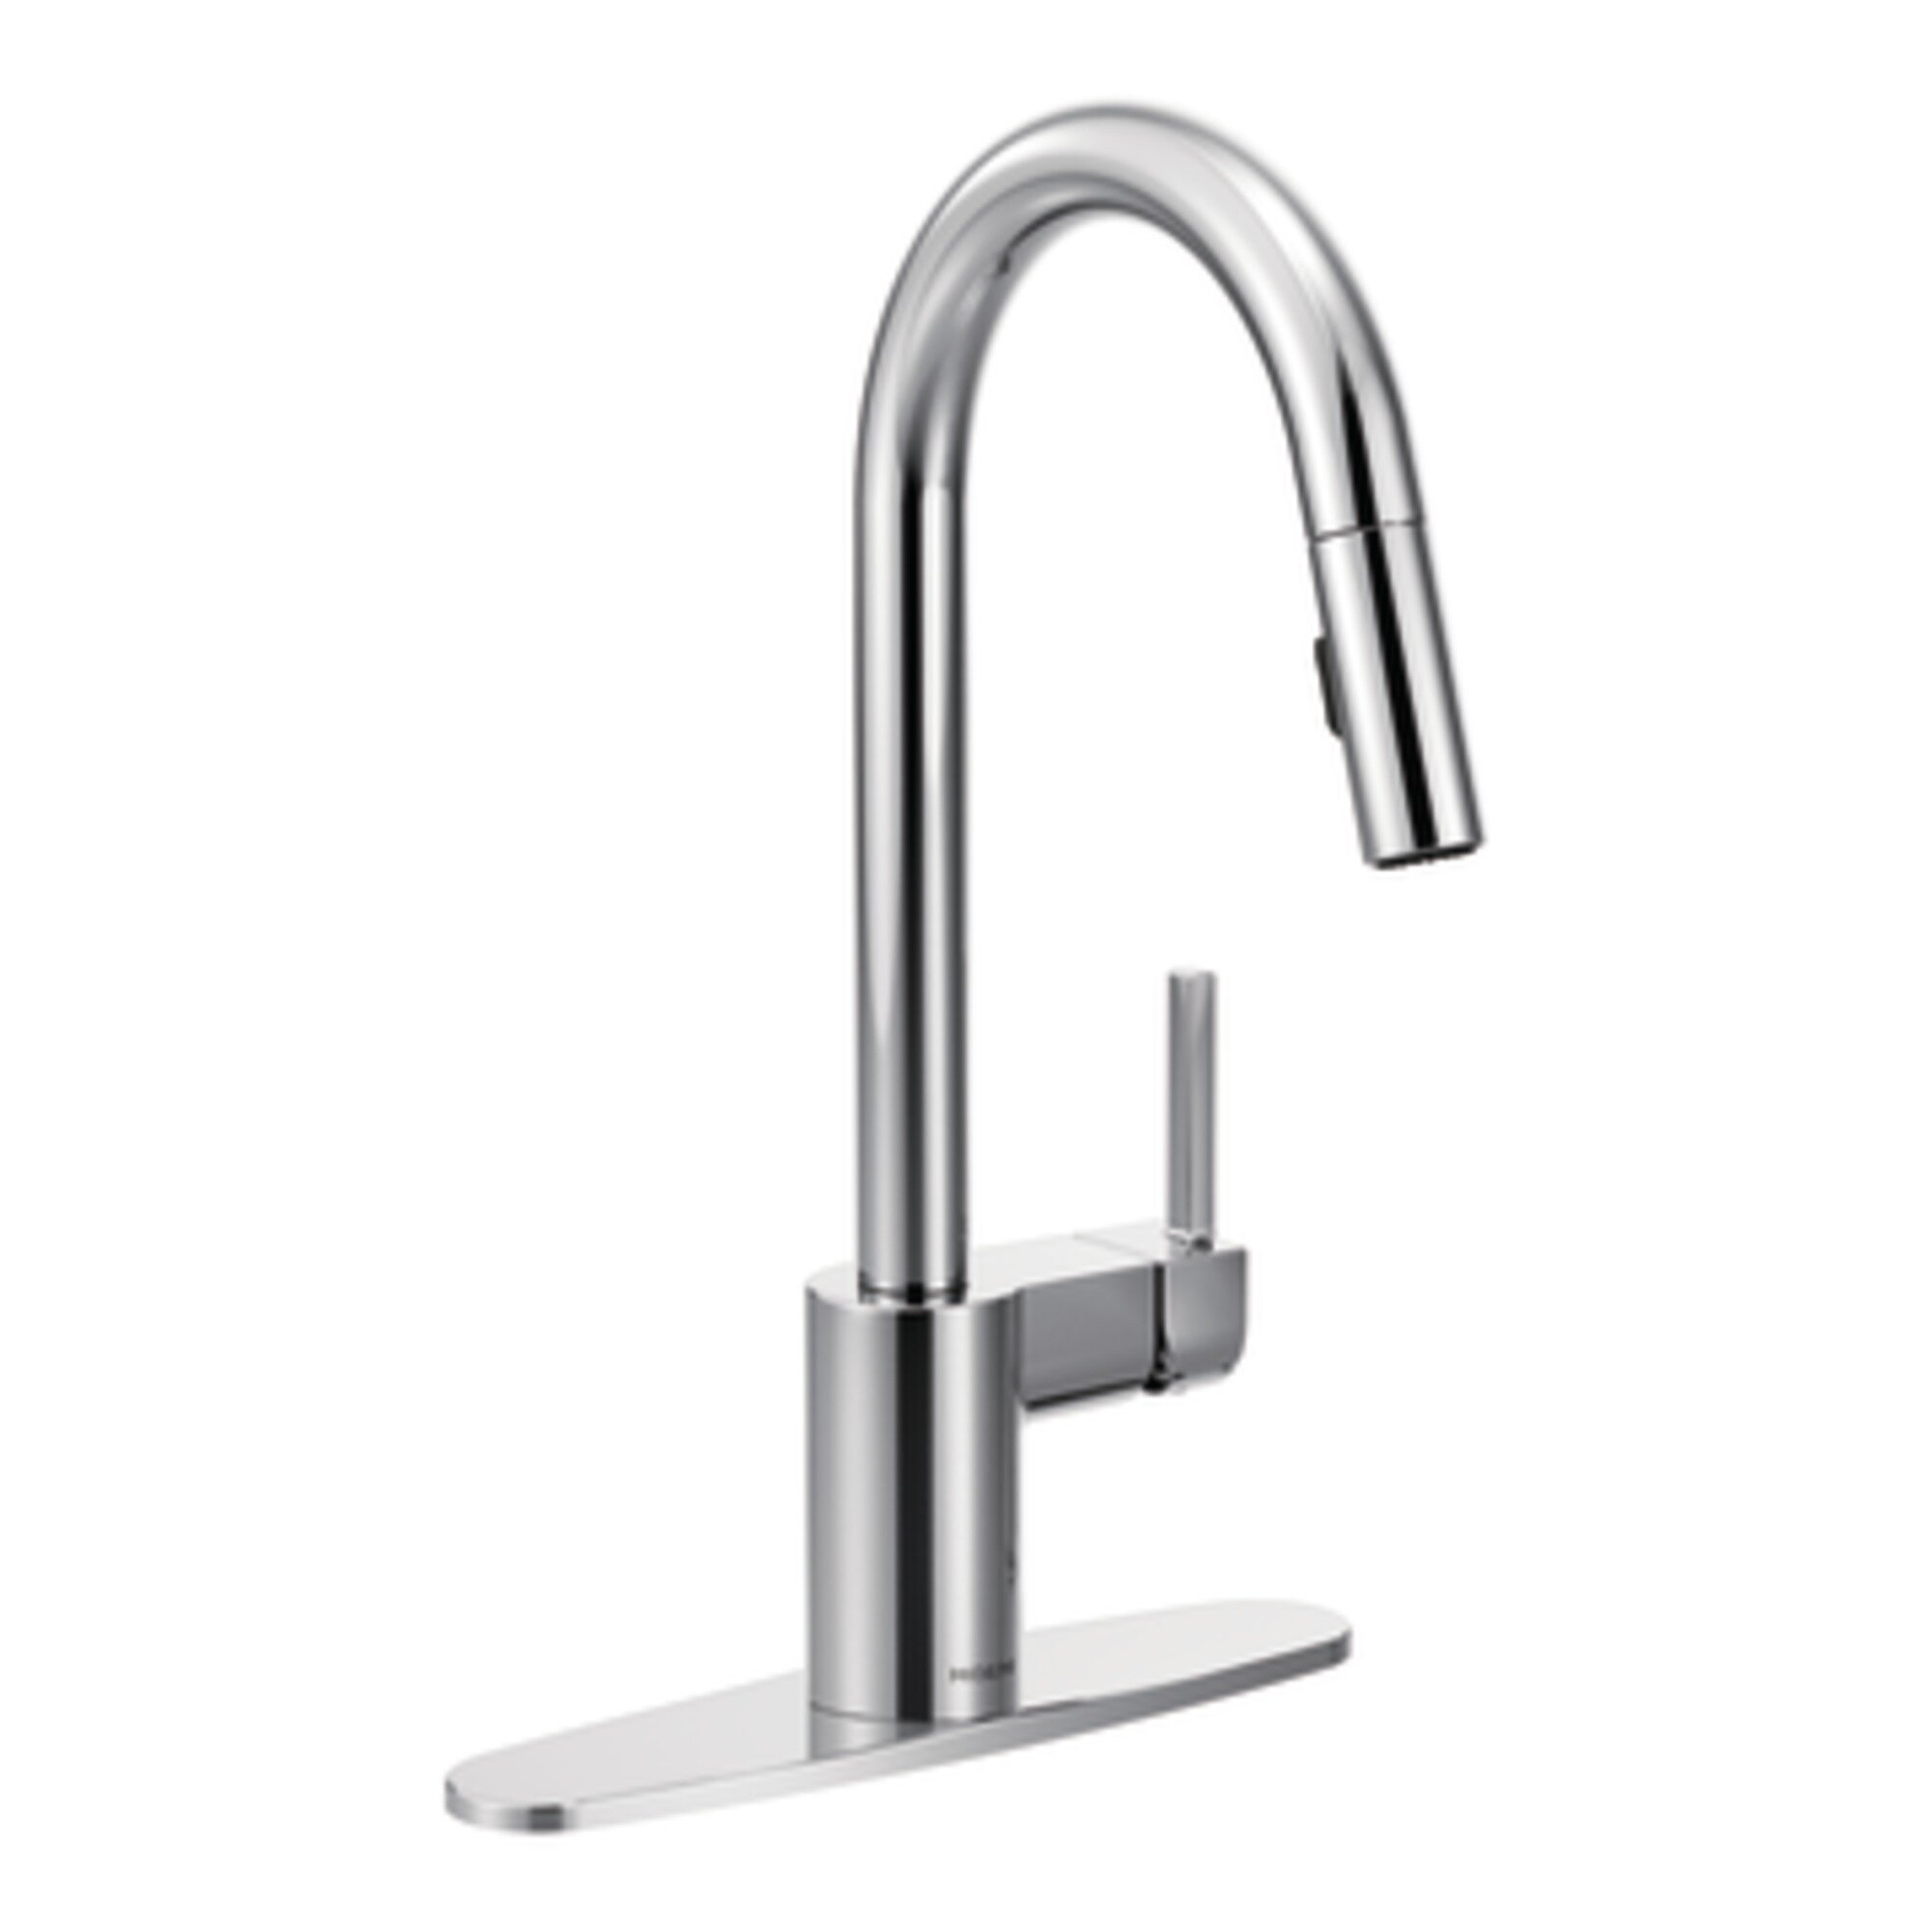 Moen Terrace Kitchen Faucet Moen Quinn Kitchen Faucet Best Kitchen 2017